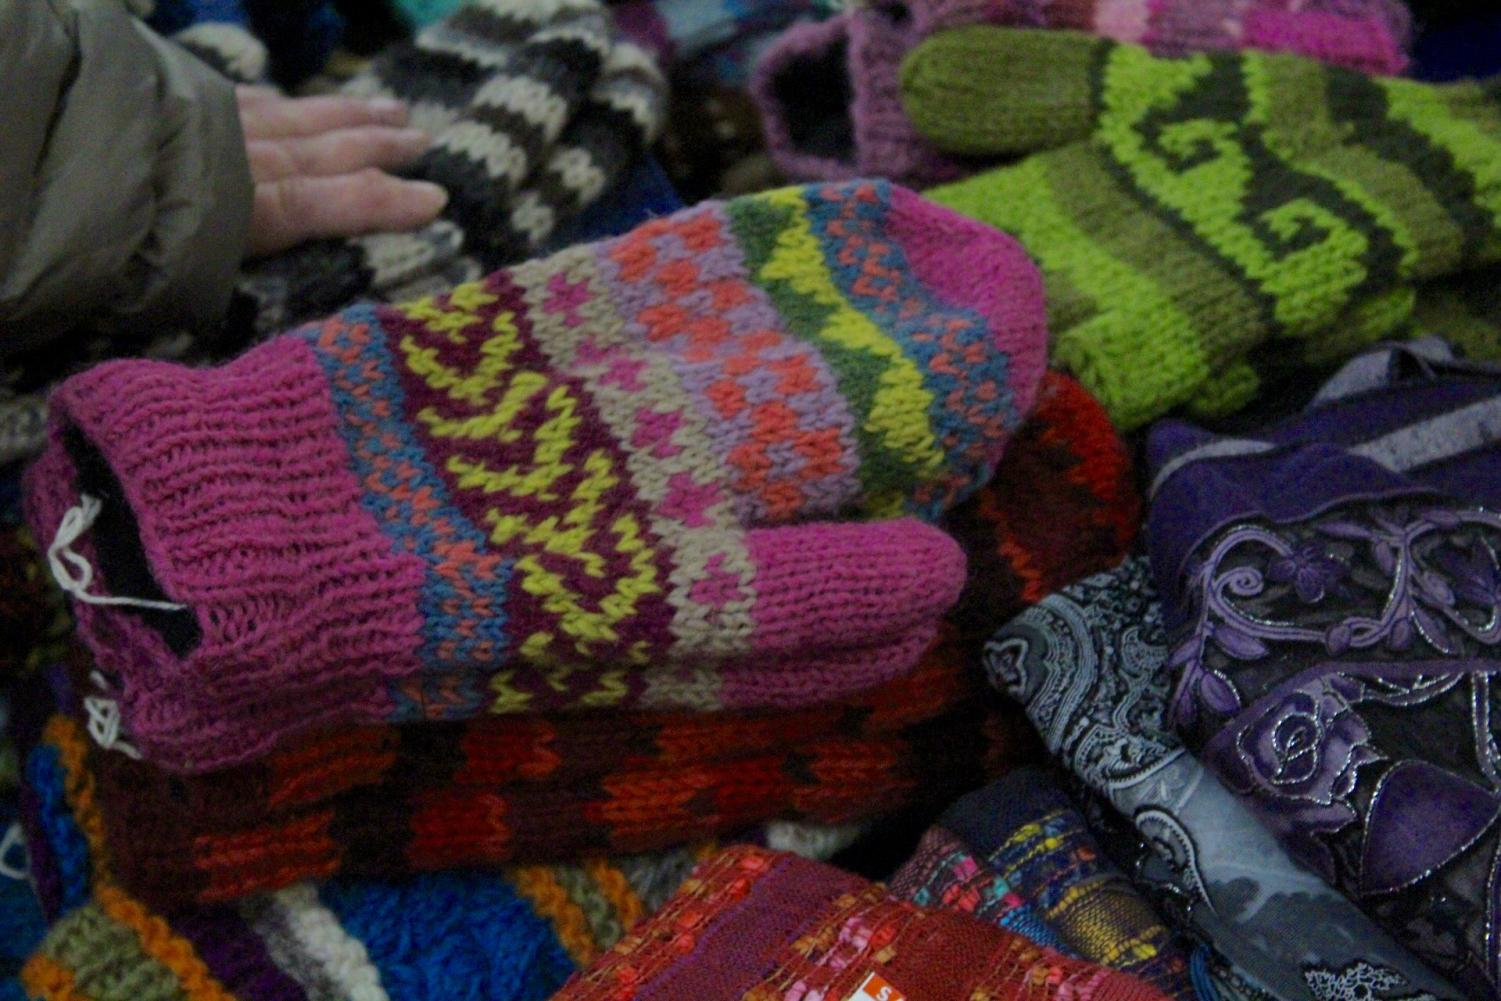 Homemade mittens in a variety of patterns and color were for sale at Saturday's Artisan Festival.